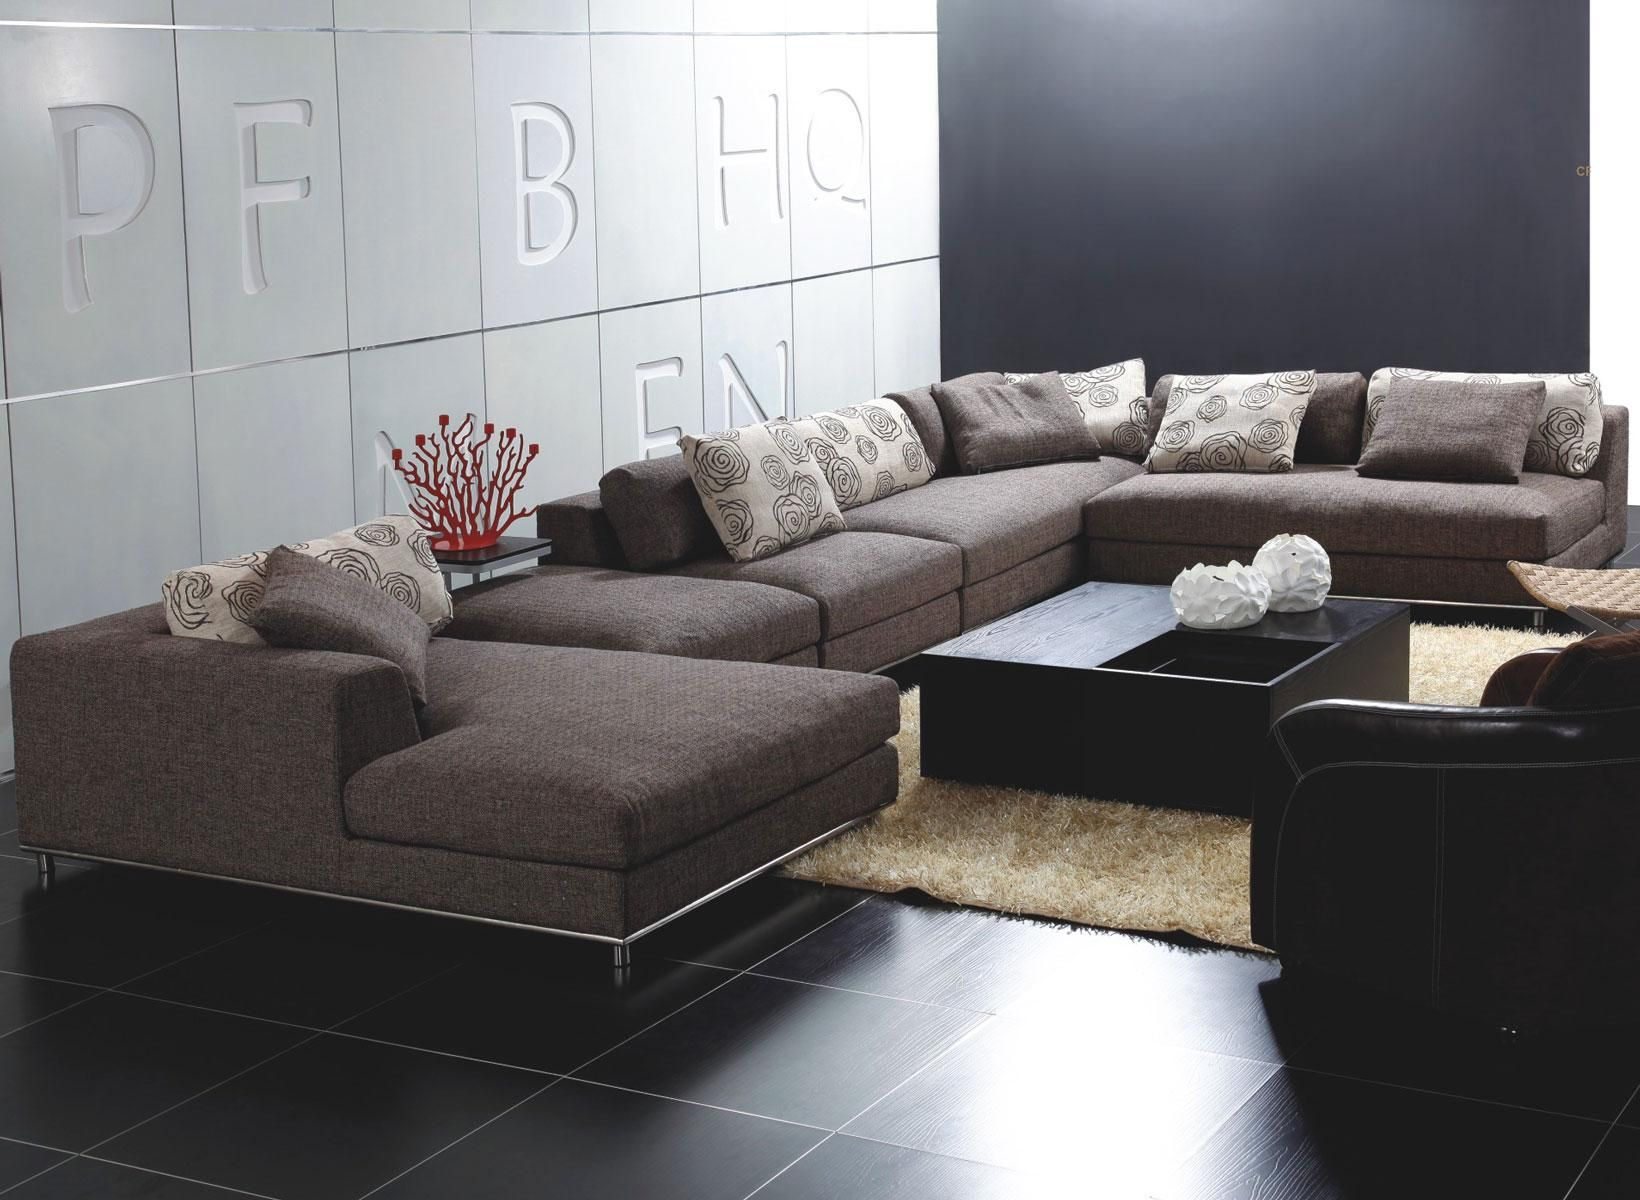 depiction of best sectional sofa for the money that will stun you  - depiction of best sectional sofa for the money that will stun you